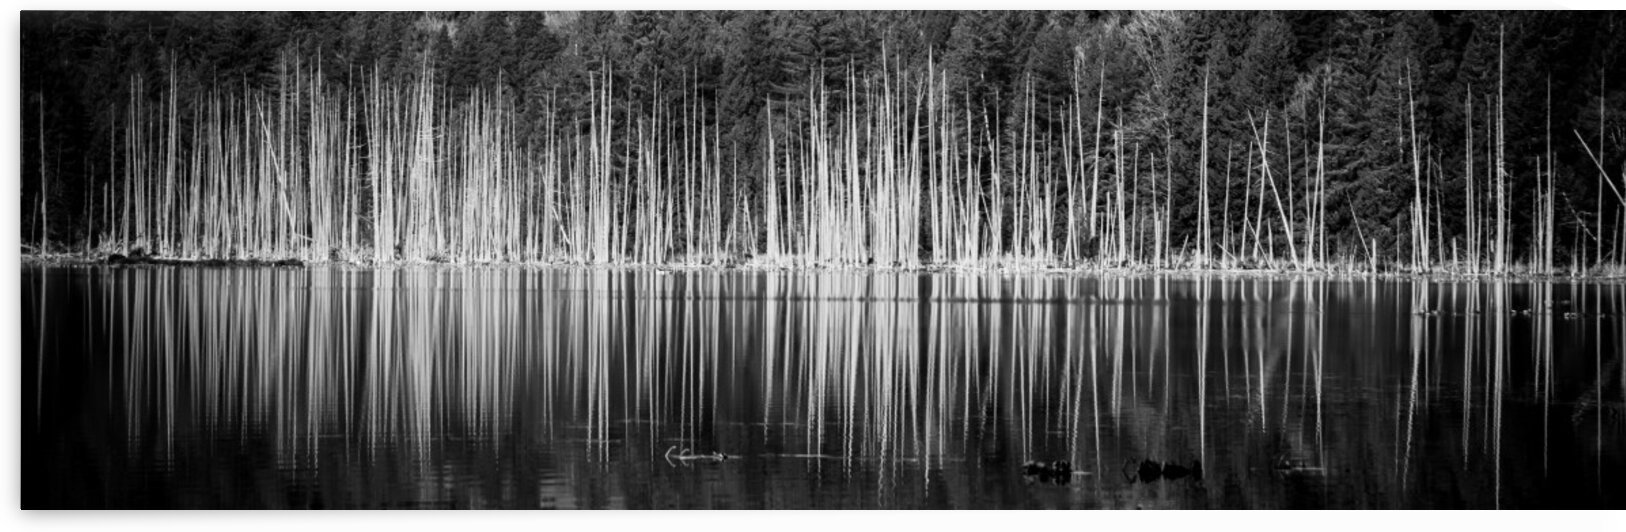 The Silent Sound of Trees by bj clayden photography